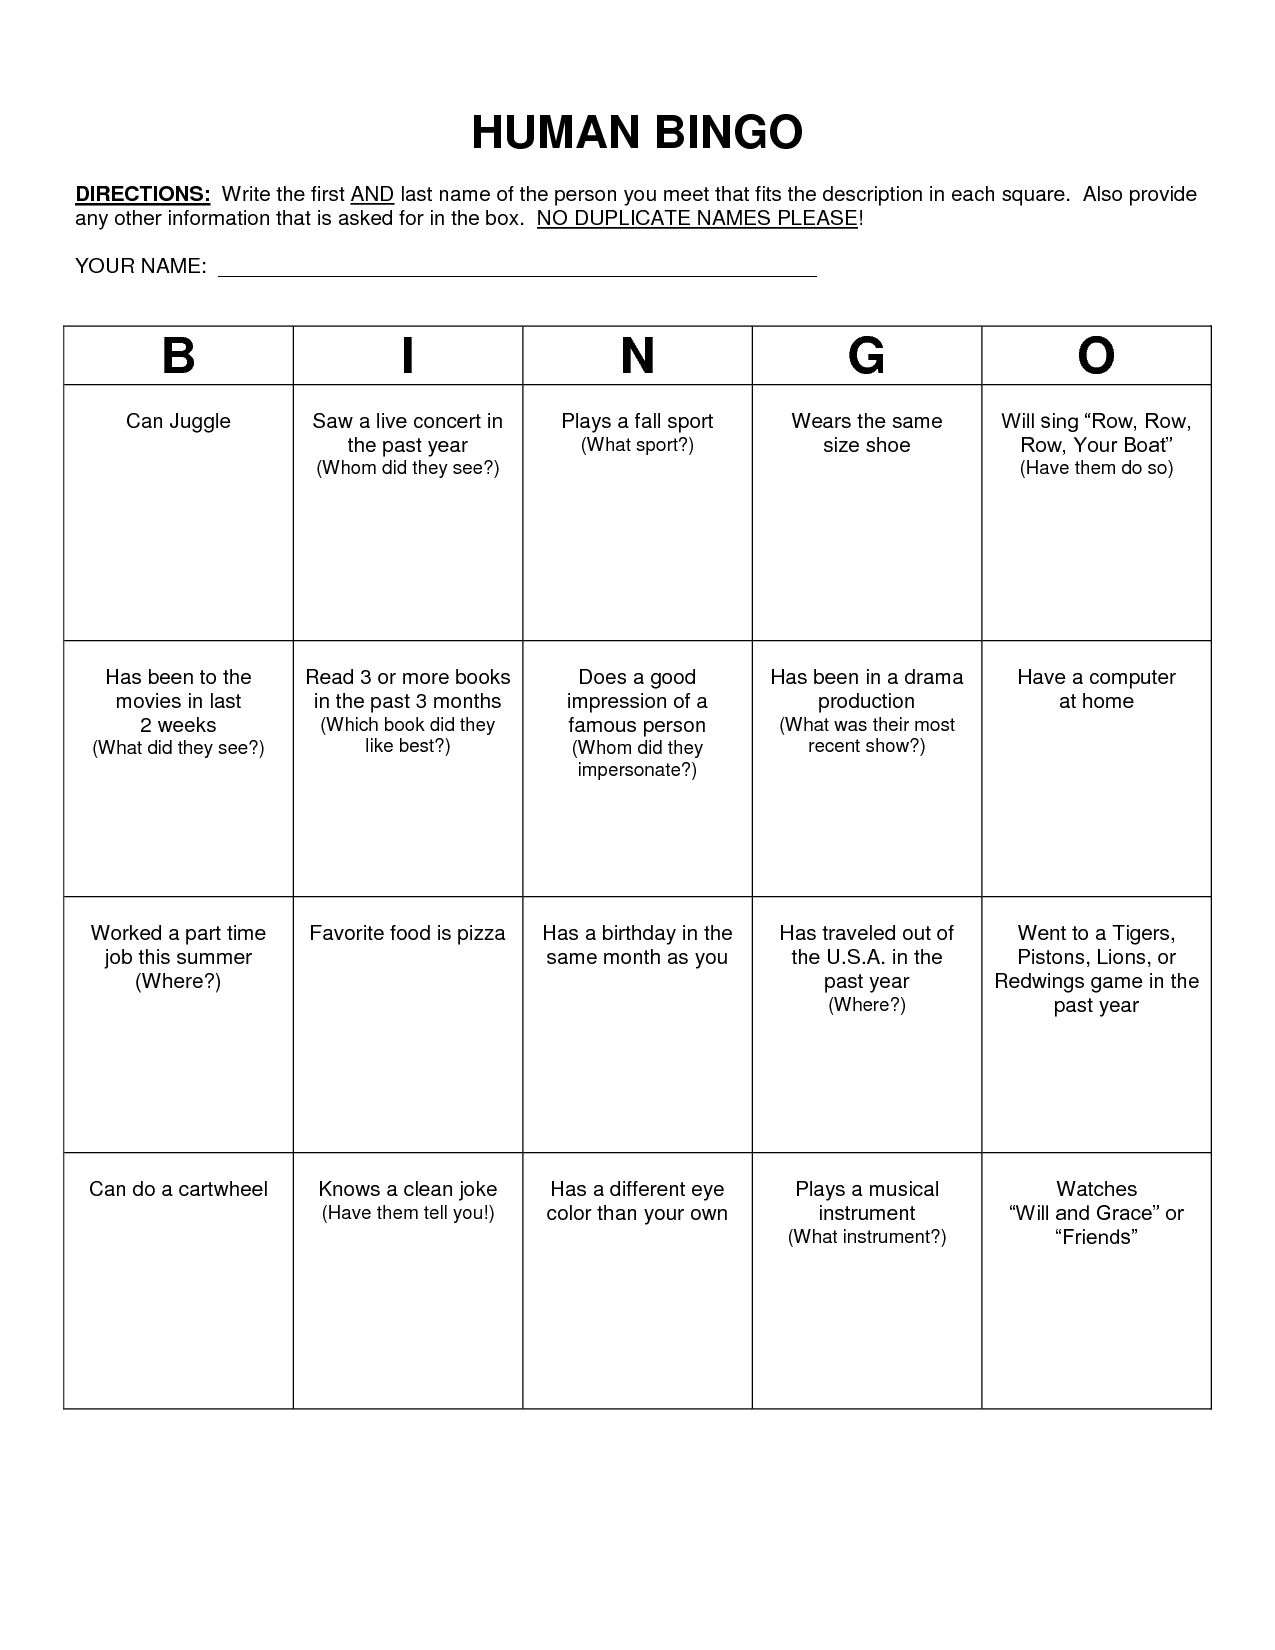 human bingo scavenger hunt template classroom pinterest human bingo template and ice breakers. Black Bedroom Furniture Sets. Home Design Ideas